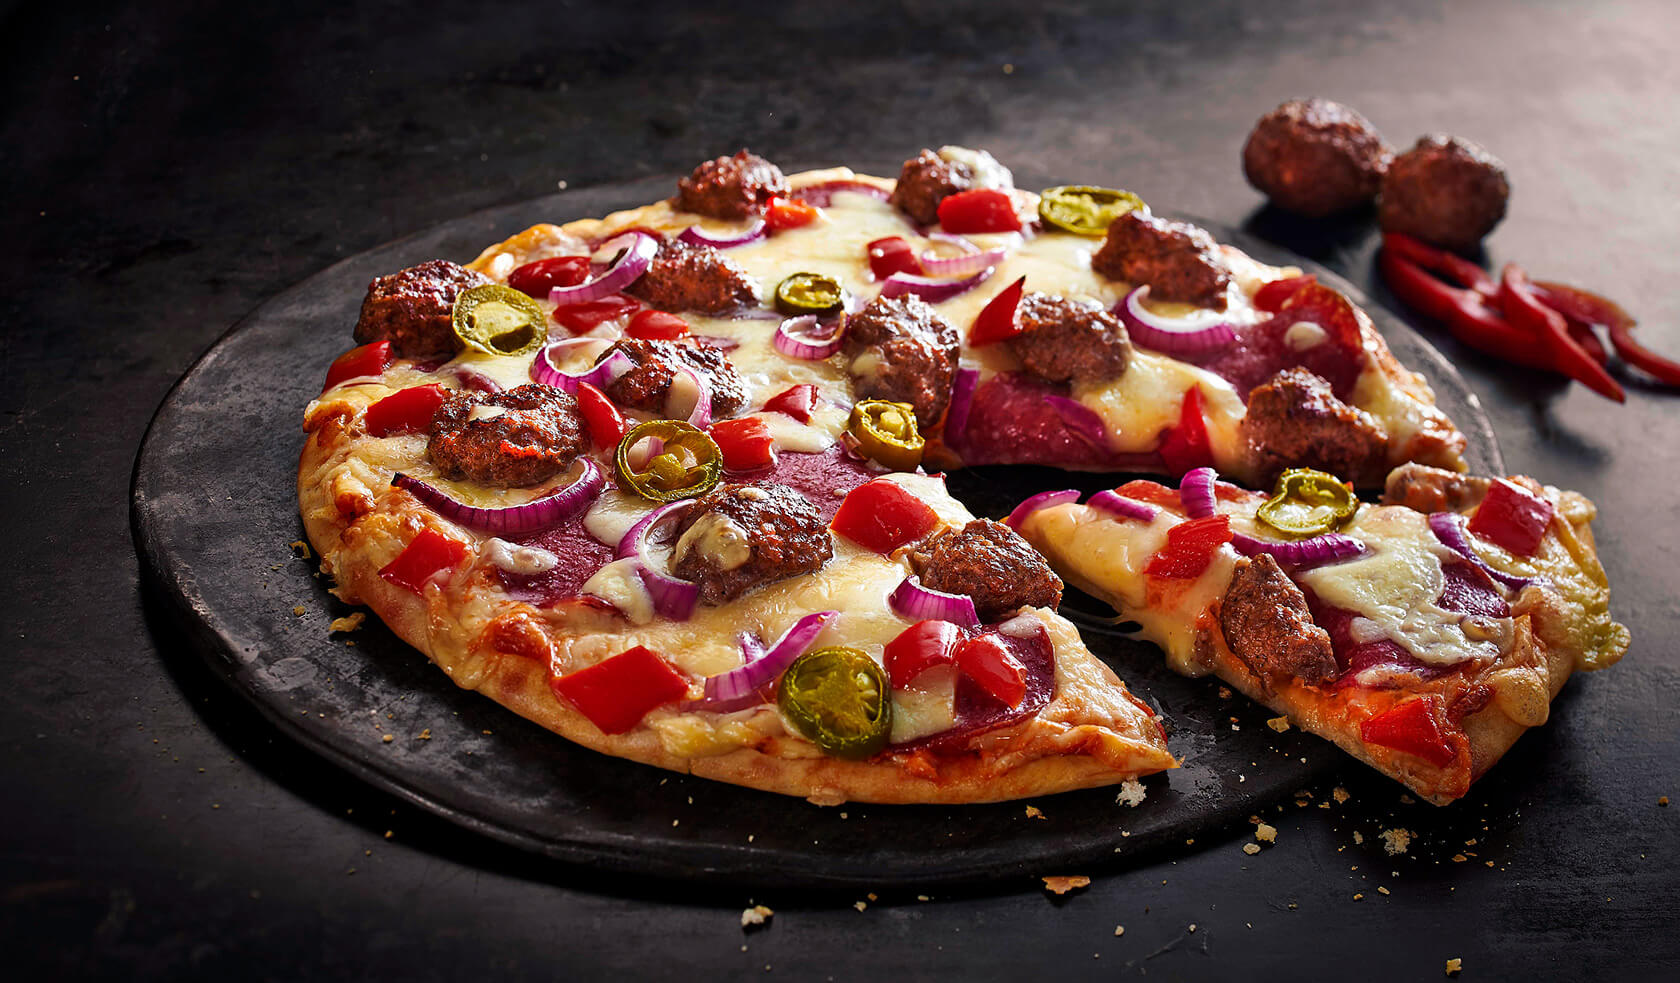 Pizza Spicy Meat & Greet